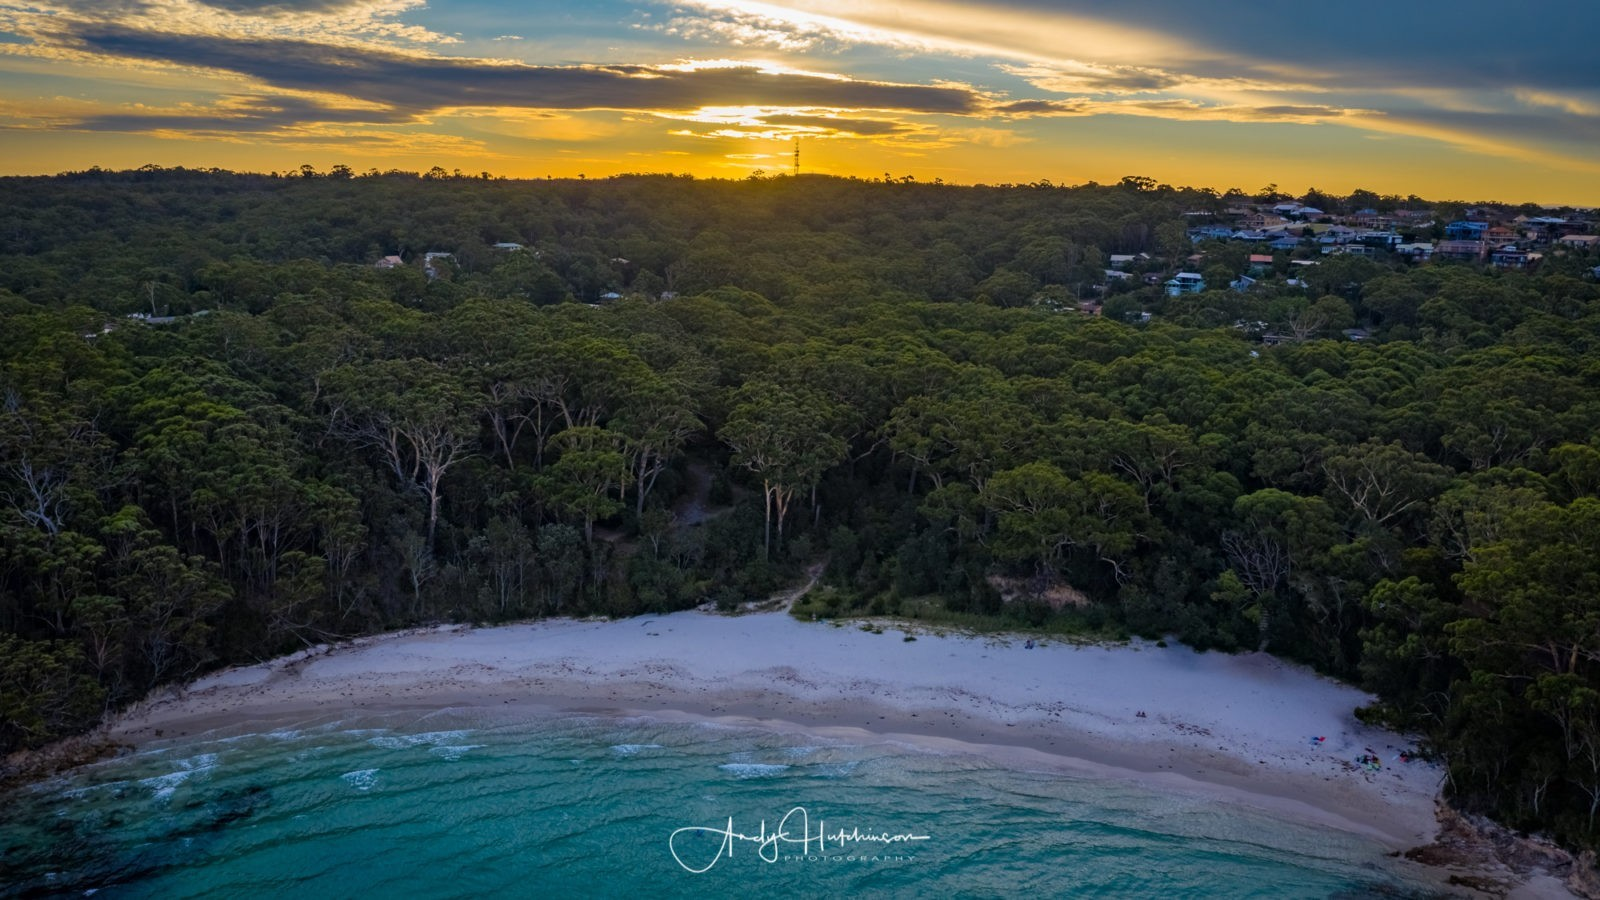 It was a lot quieter at Blenheim, just one couple enjoying the sunset on chairs with a glass of wine and a large group of foreign backpackers getting pissed and playing a guitar badly at the northern end of the beach. So I put the drone in the air, to see if there was any sky colour. It looked promising but the wind was really picking up by this point.